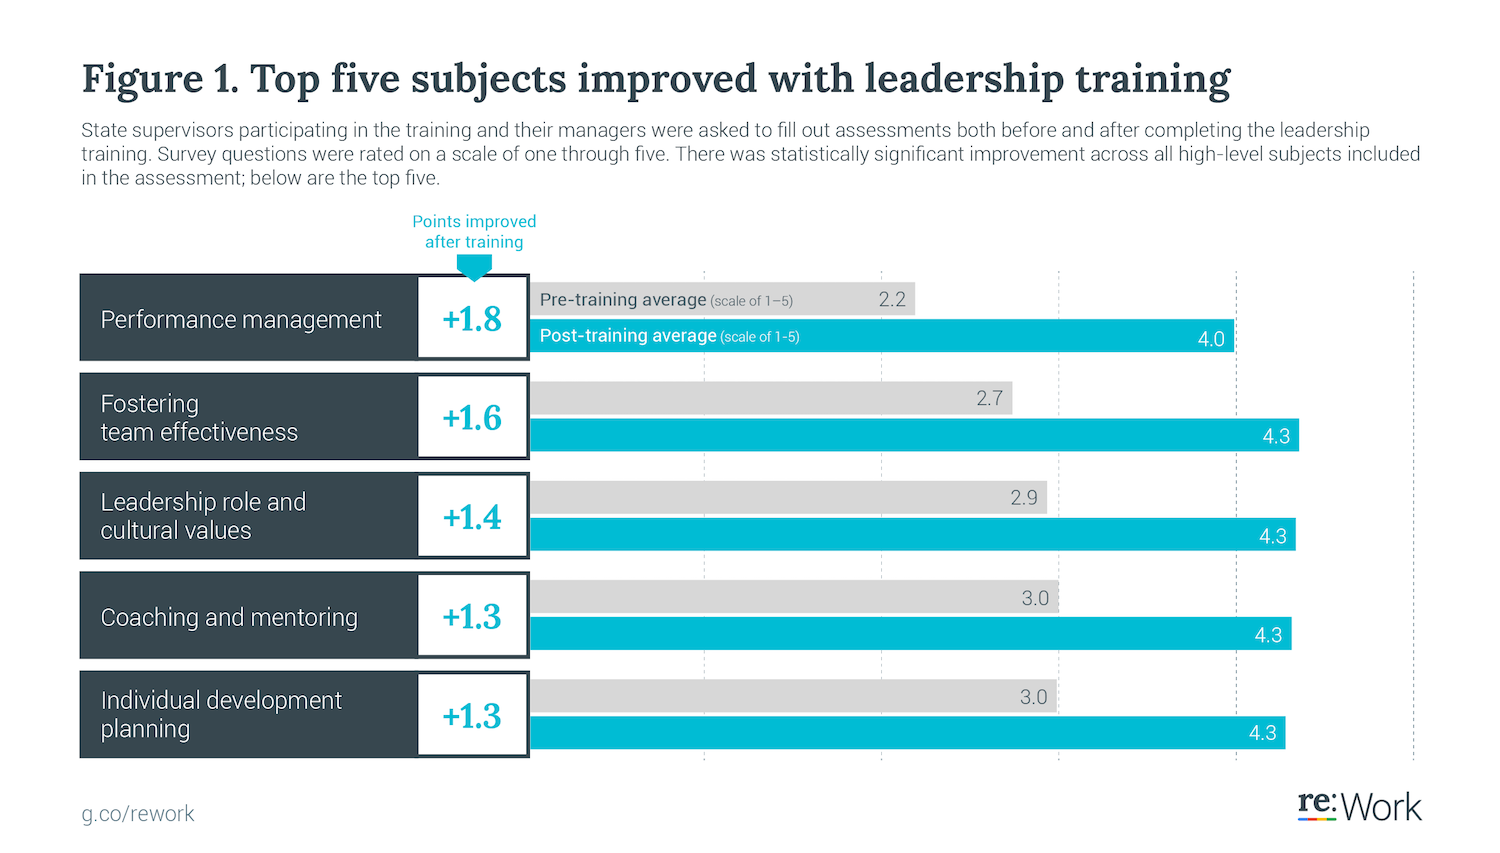 State supervisors participating in the training and their managers were asked to fill out assessments both before and after completing the leadership training. Survey questions were rated on a scale of one through five. There was statistically significant improvement across all high-level subjects included in the assessment; below are the top five.